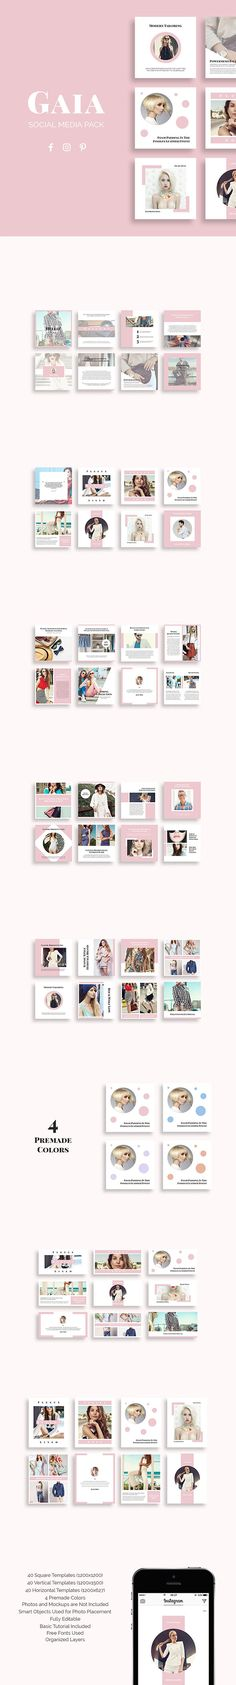 Gaia is a creative social media template designed for Pinterest, Instagram and Facebook. It is prepared with a strong fashion theme but it can be used in any field you like! Make a perfect impression of your brand with great-looking posts! Created by @slidestation on @creativemarket